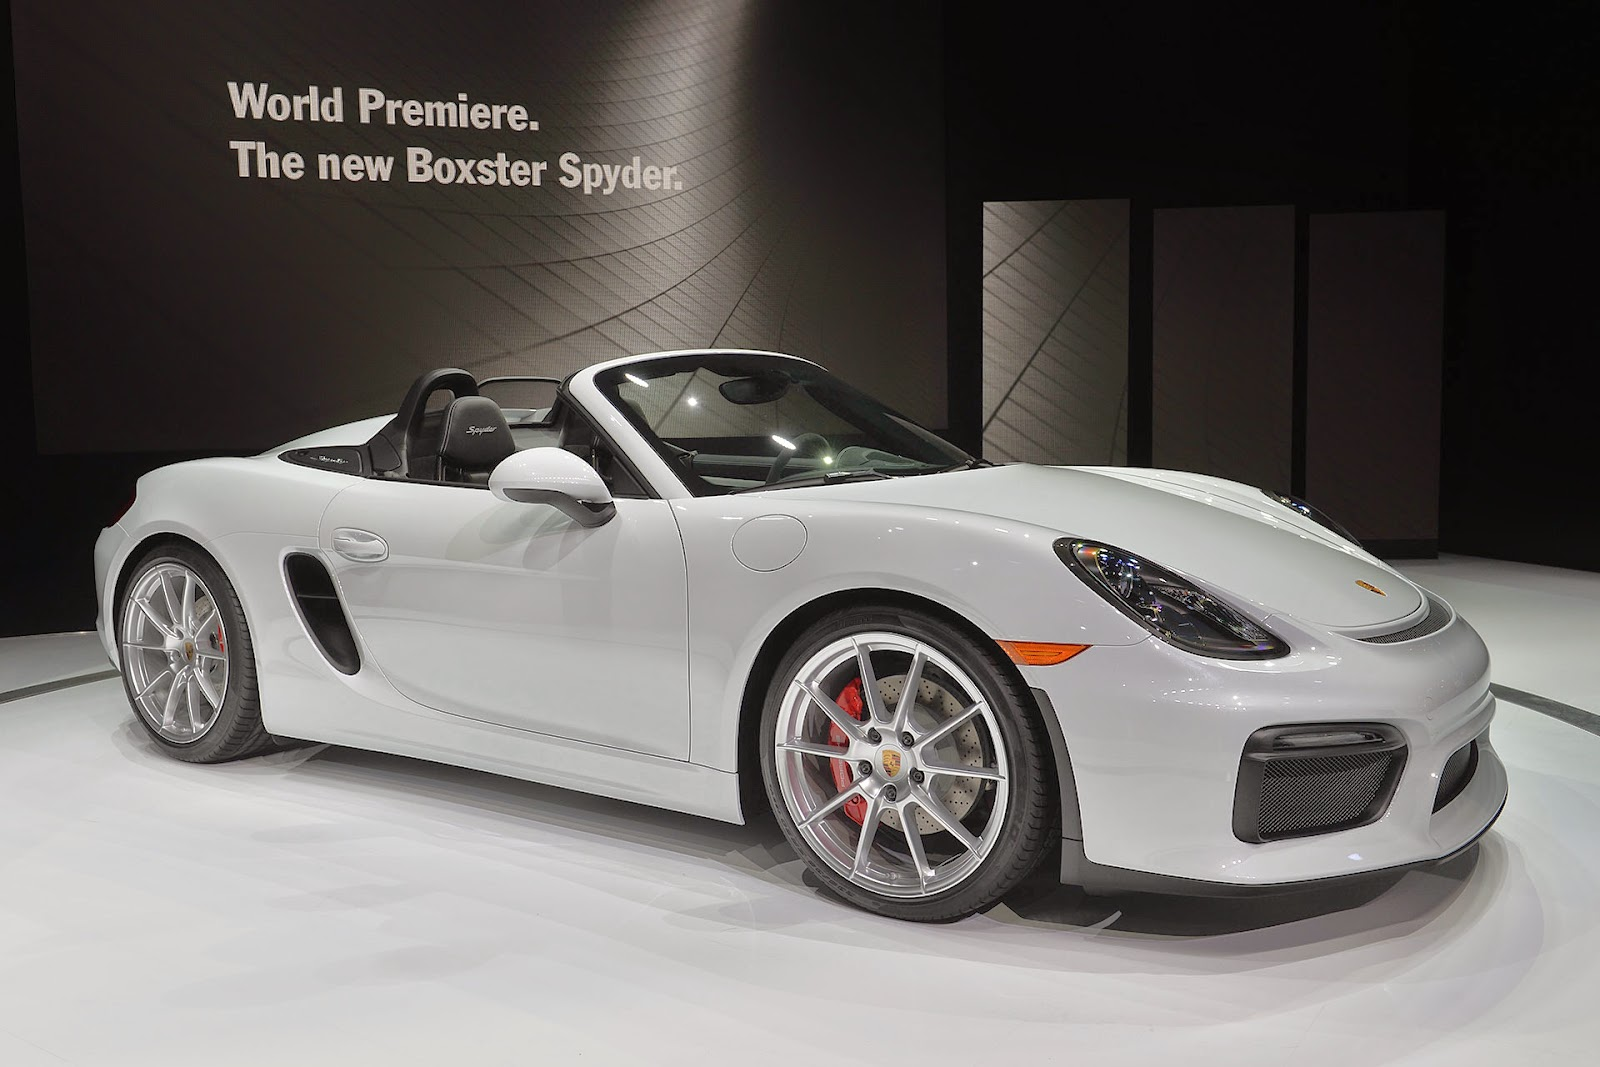 Automotiveblogz: Porsche Boxster Spyder: New York 2015